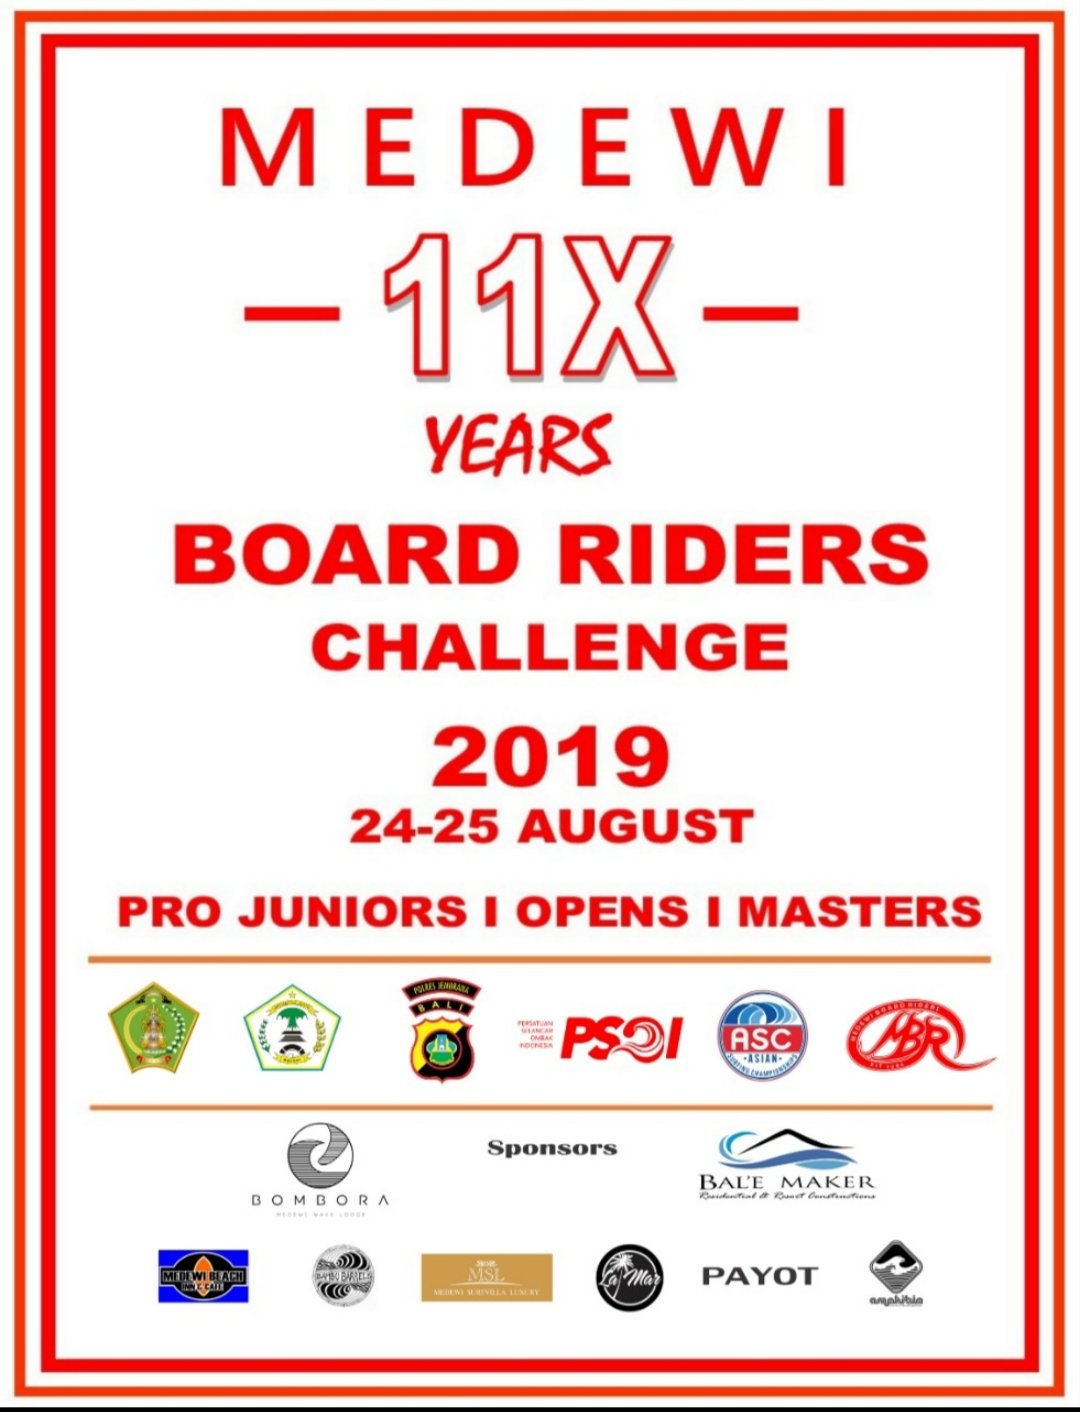 Medewi Boardriders National Surfing Challenge 24-25August 2019